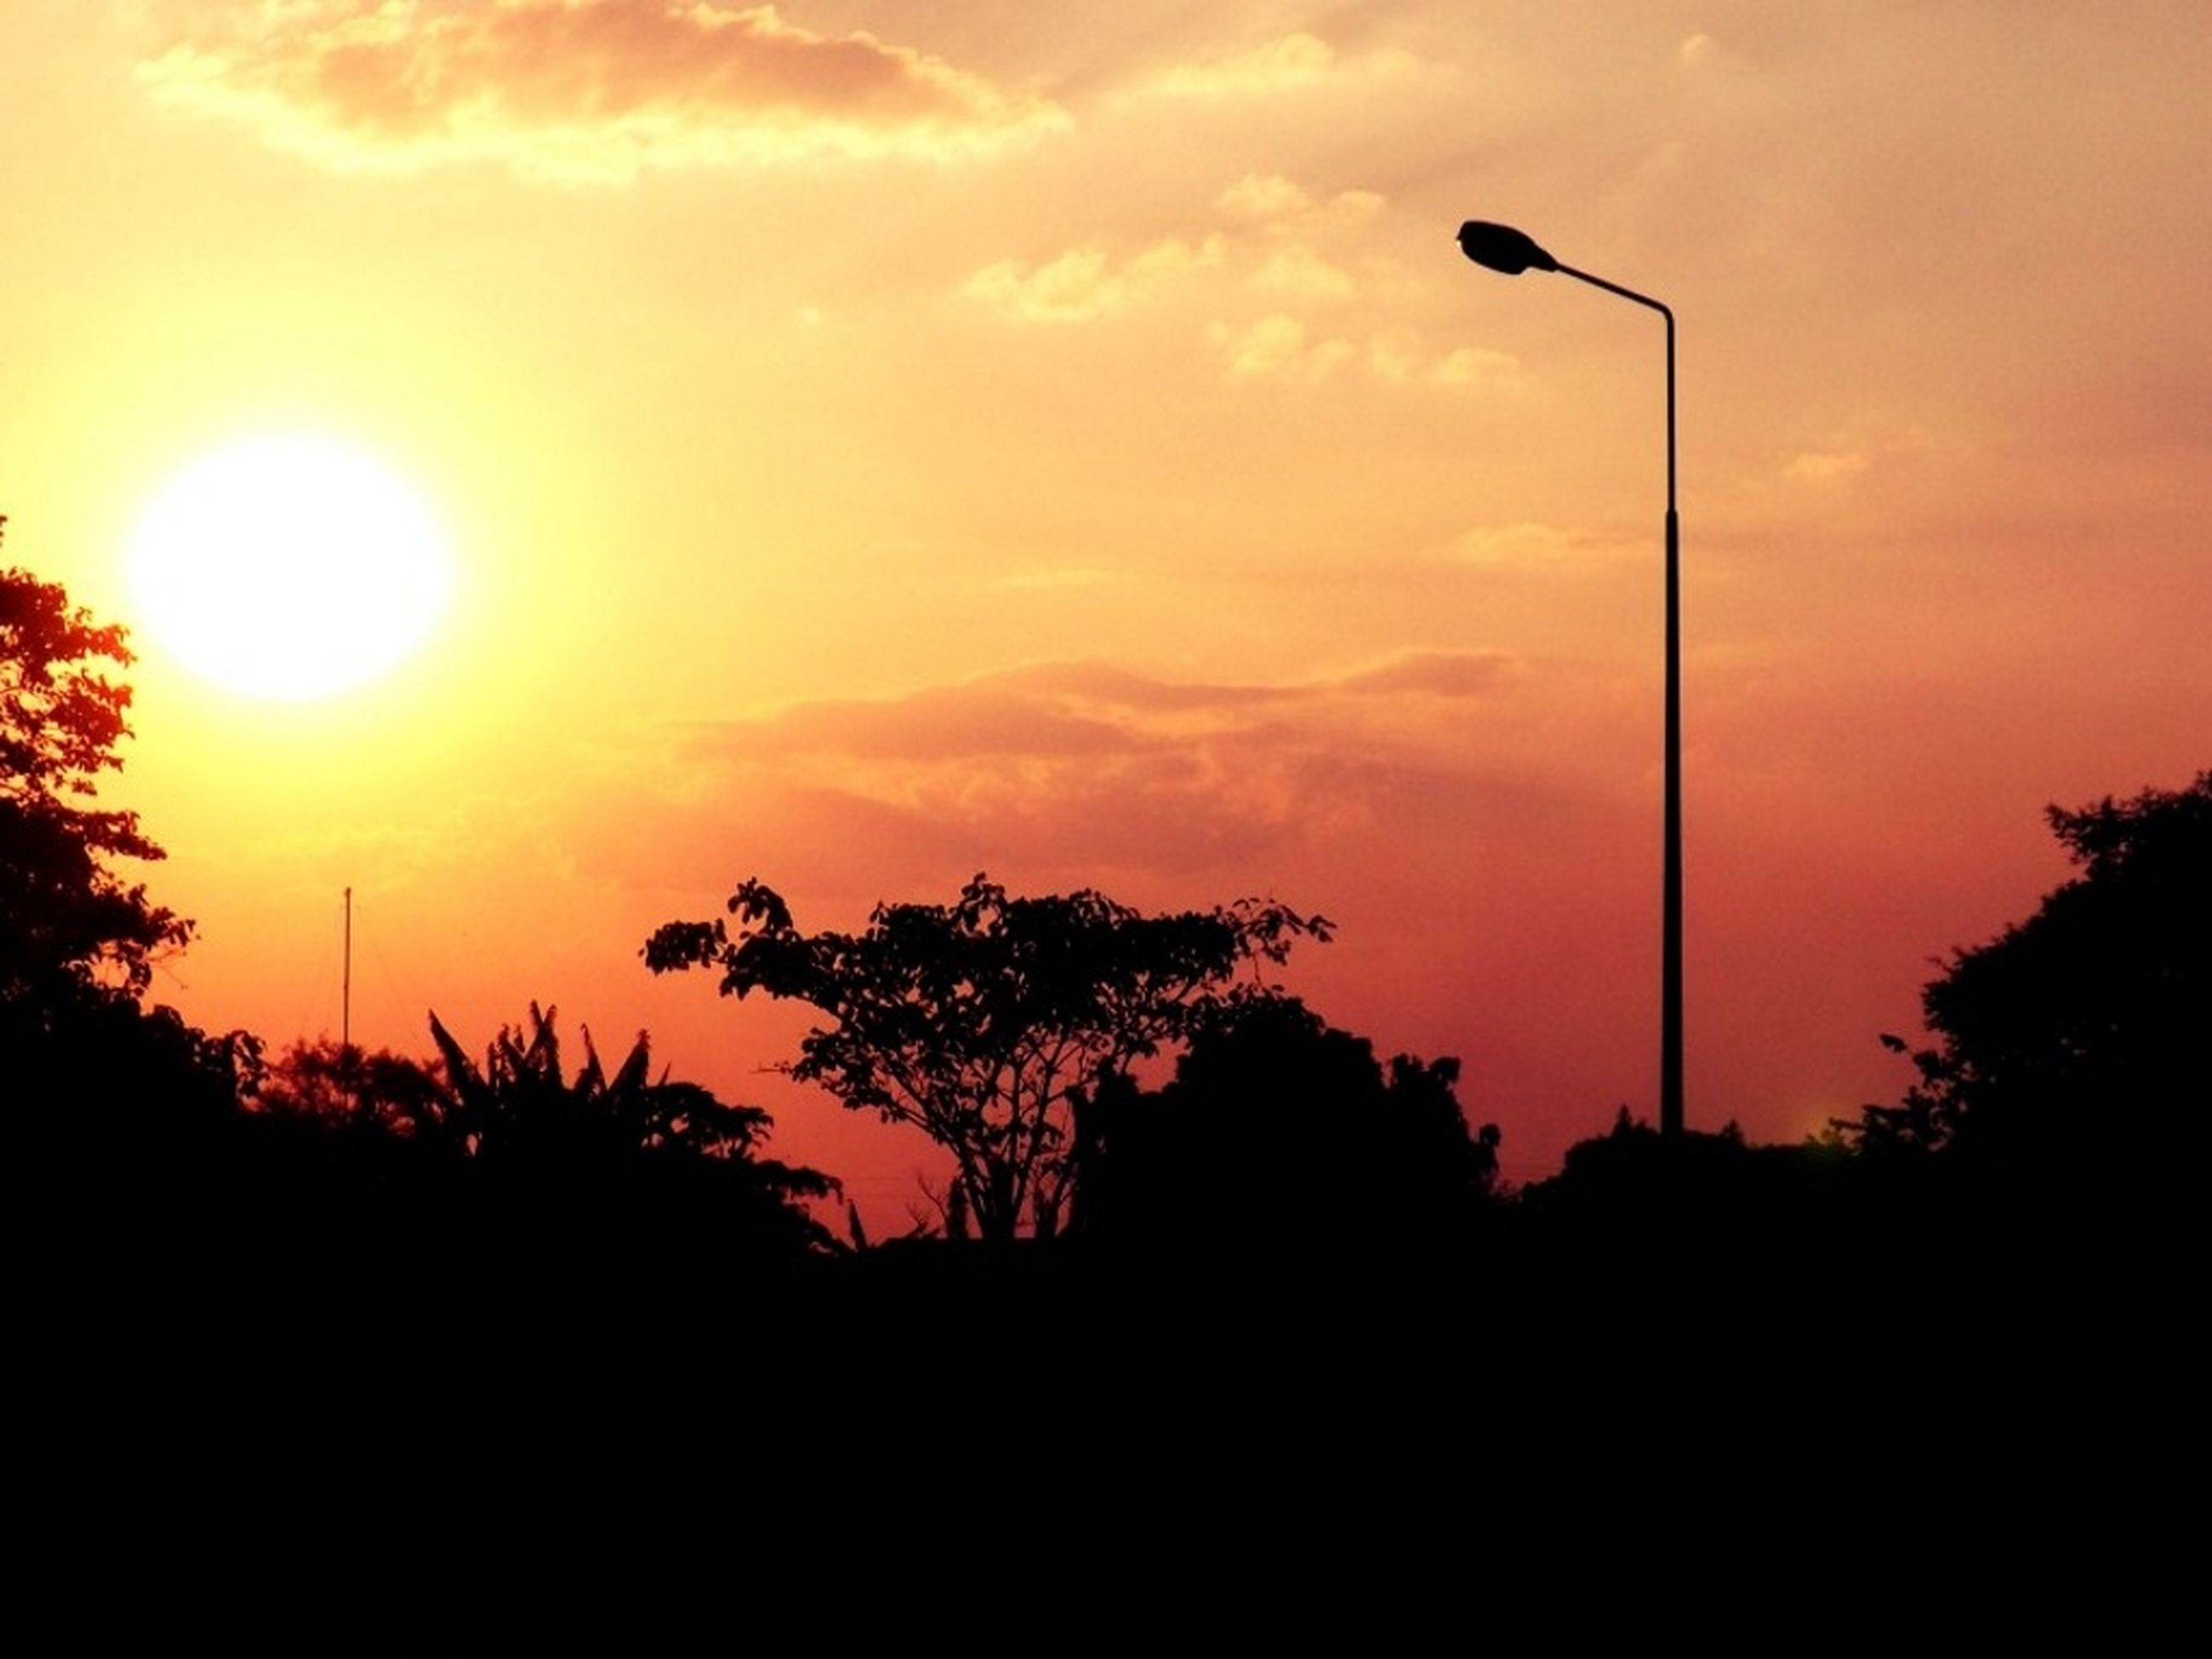 sunset, silhouette, sun, street light, tree, sky, orange color, beauty in nature, tranquility, scenics, tranquil scene, nature, sunlight, idyllic, sunbeam, cloud - sky, lighting equipment, low angle view, no people, outdoors